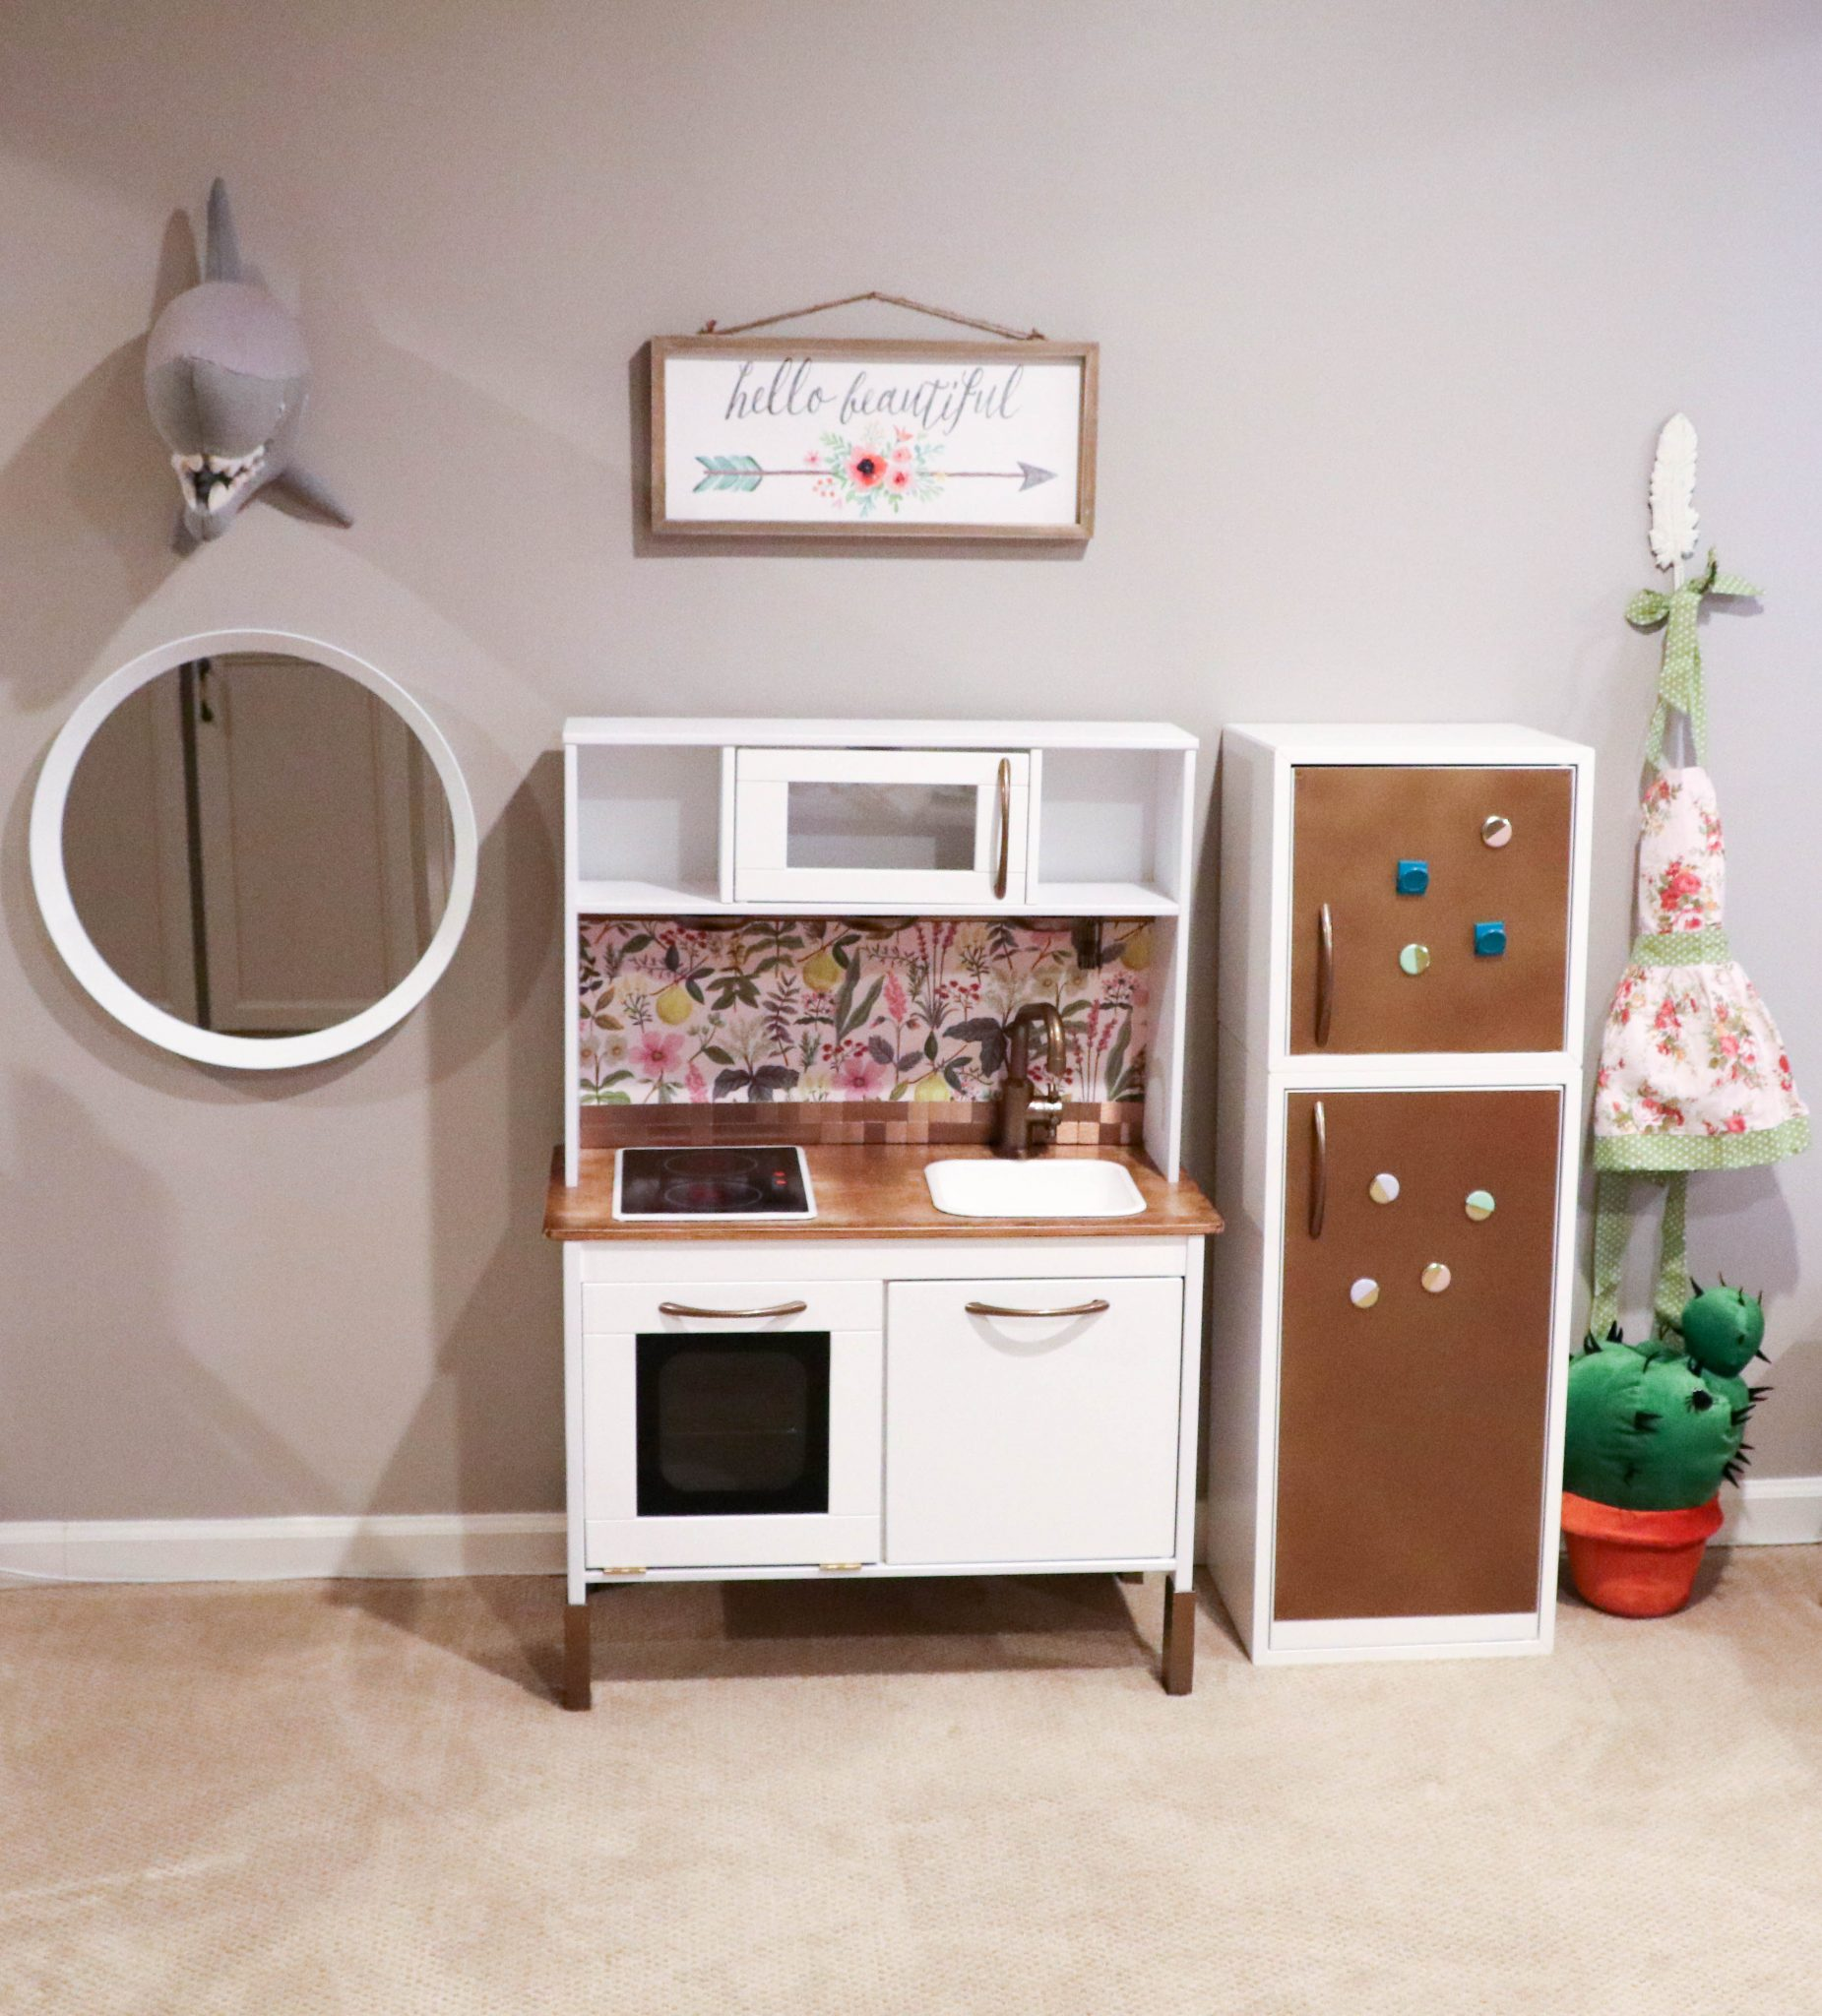 IKEA Hack: Building Your Child's Dream DUKTIG Play Kitchen